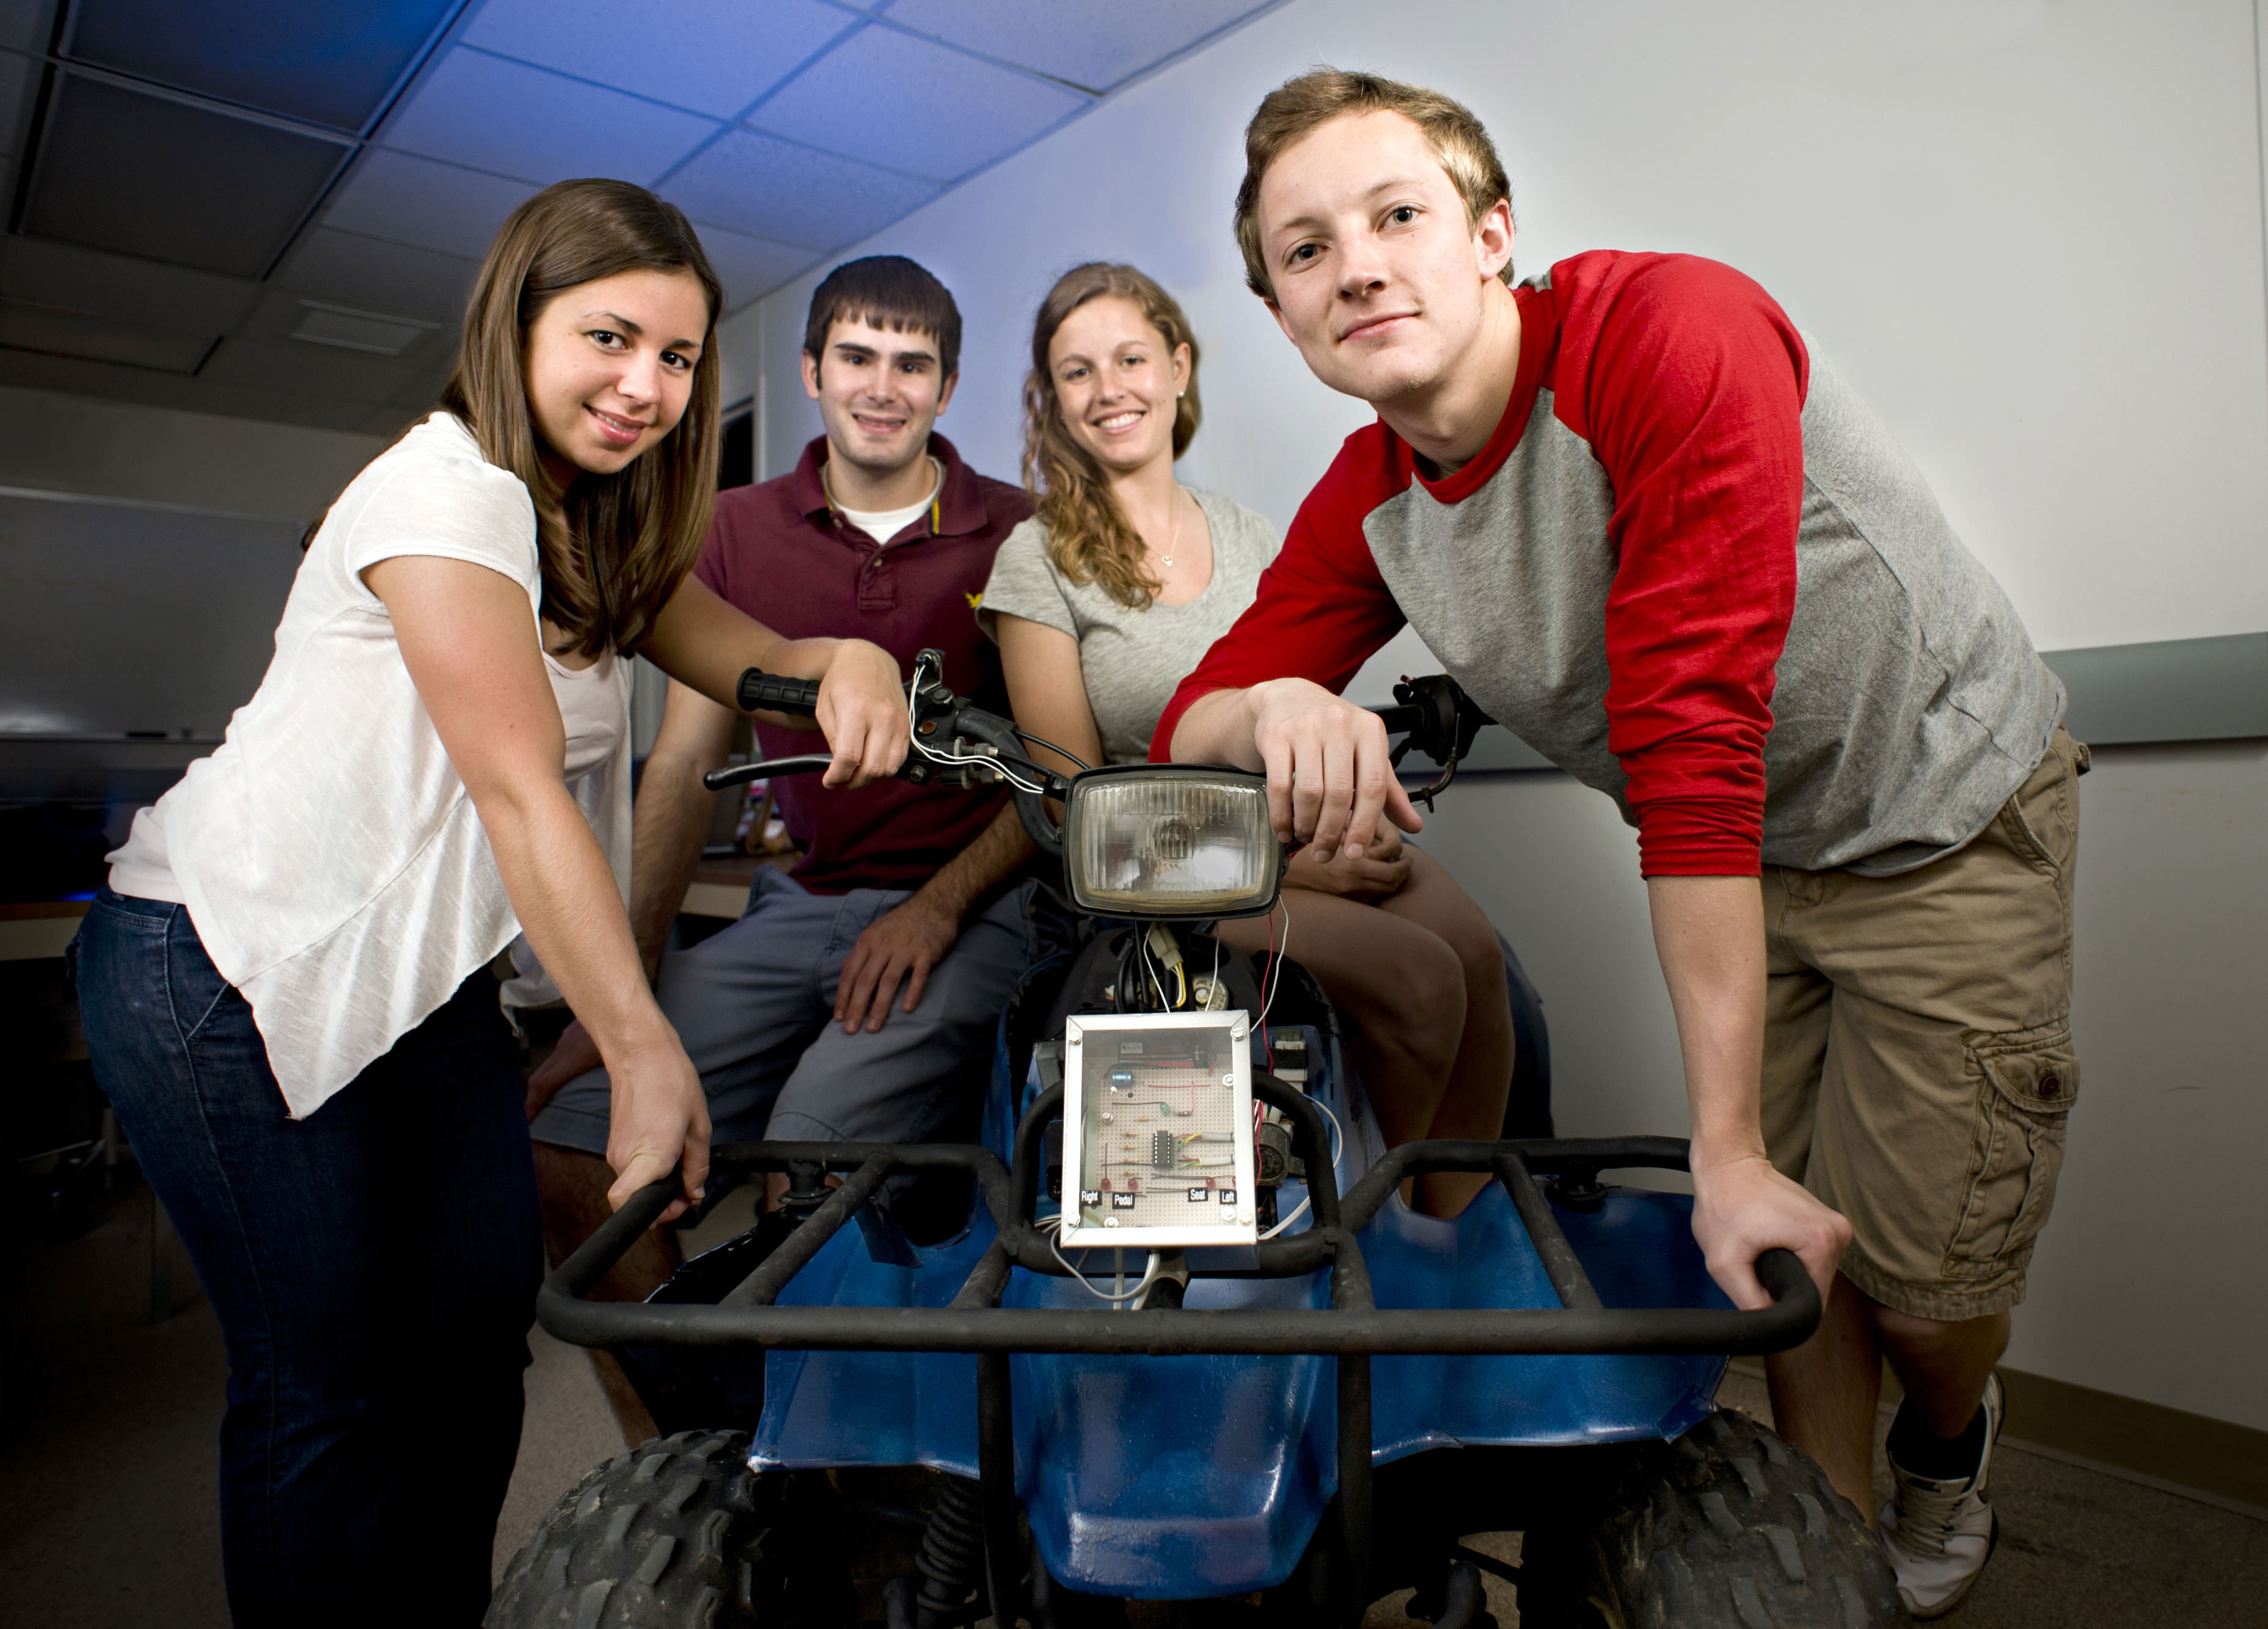 Engineering students develop child-proof ignition safety